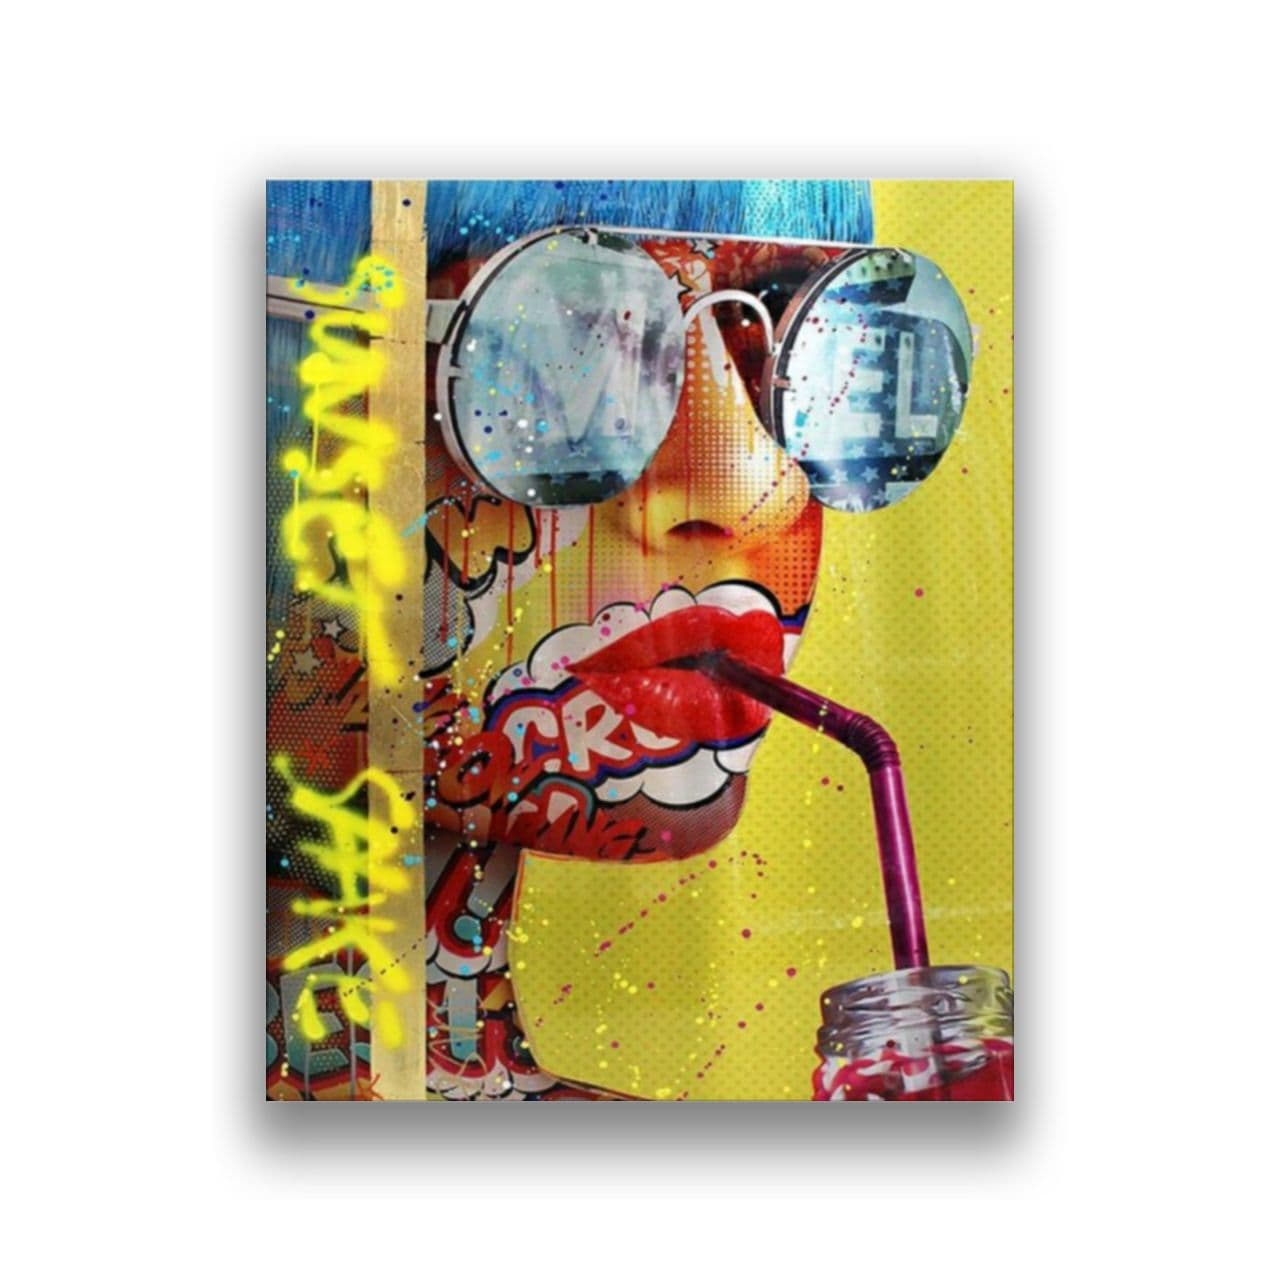 Graphiti woman with sun glases1